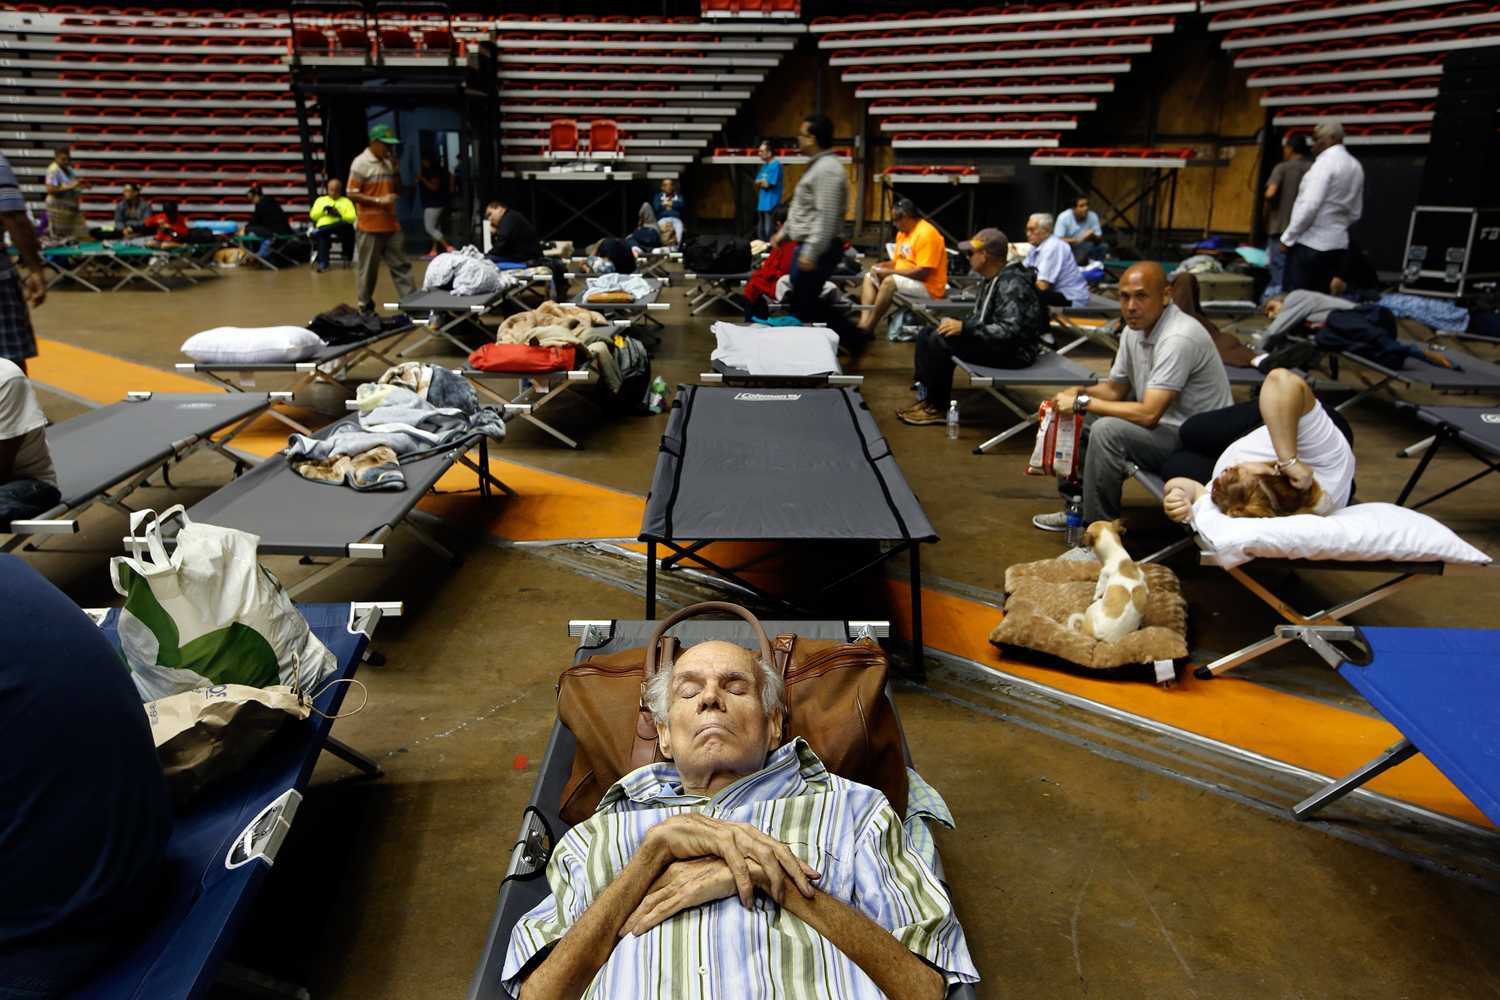 Hundreds of San Juan residents have taken shelter at the Roberto Clemente Coliseum in San Juan, Puerto Rico, on Tuesday, Sept. 19, 2017, until Hurricane Maria passes. (Carolyn Cole/Los Angeles Times/TNS)